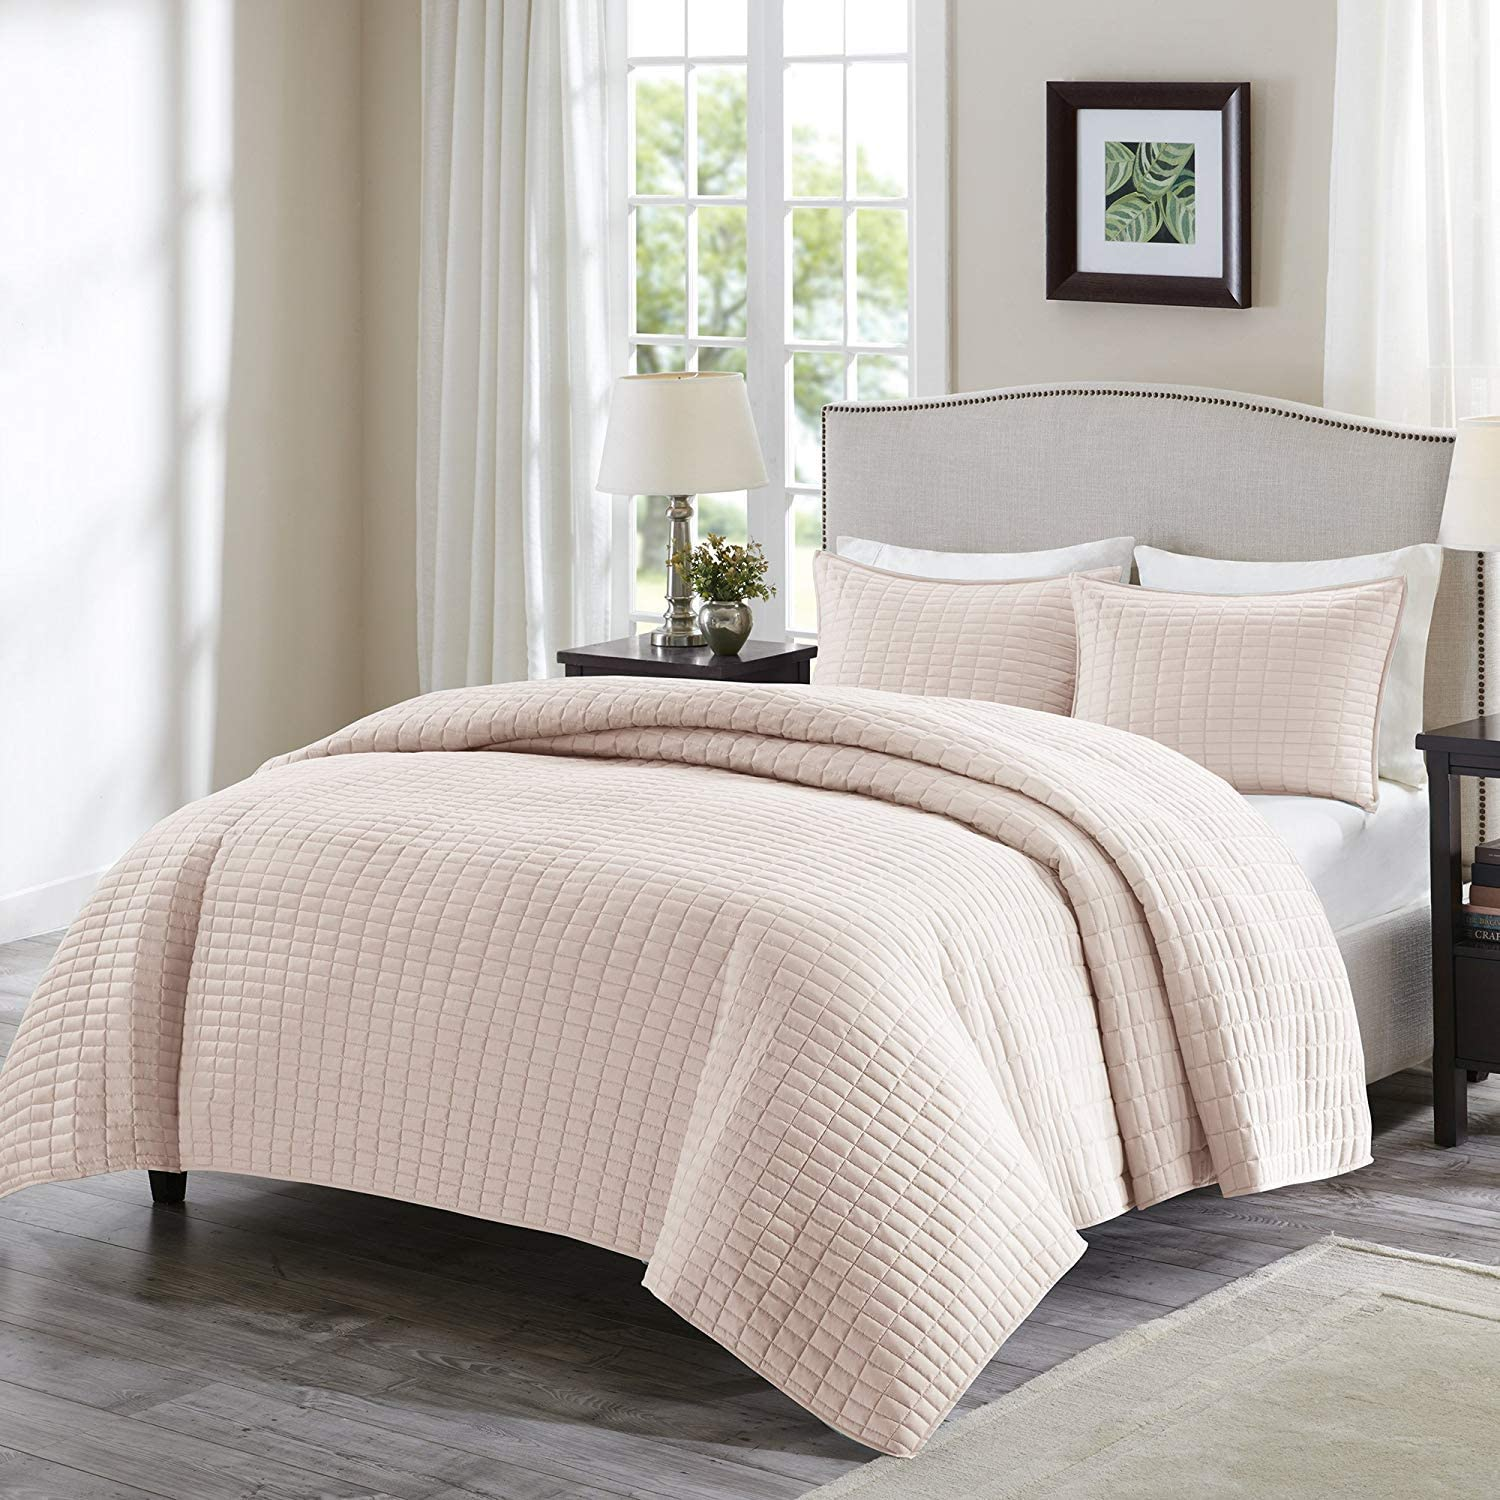 Comfort Spaces Kienna 3 Piece Quilt Coverlet Bedspread Ultra Soft Hypoallergenic Microfiber Stitched Bedding Set King Size Taupe